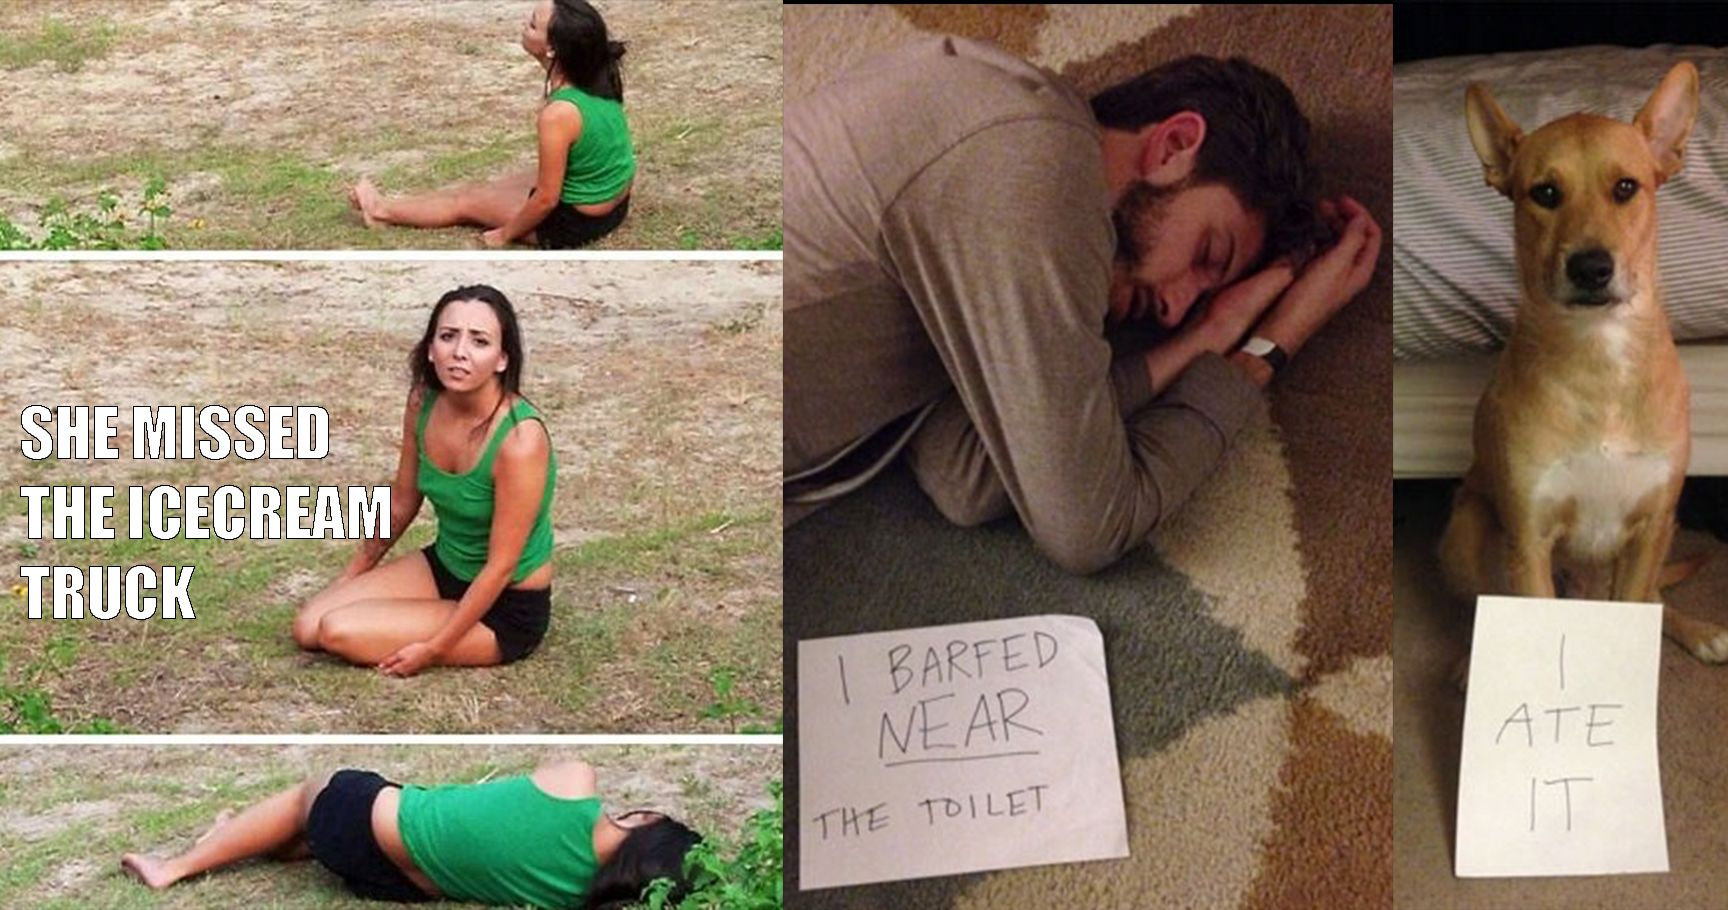 15 Most Cringy Things People Caught Their Partners Doing